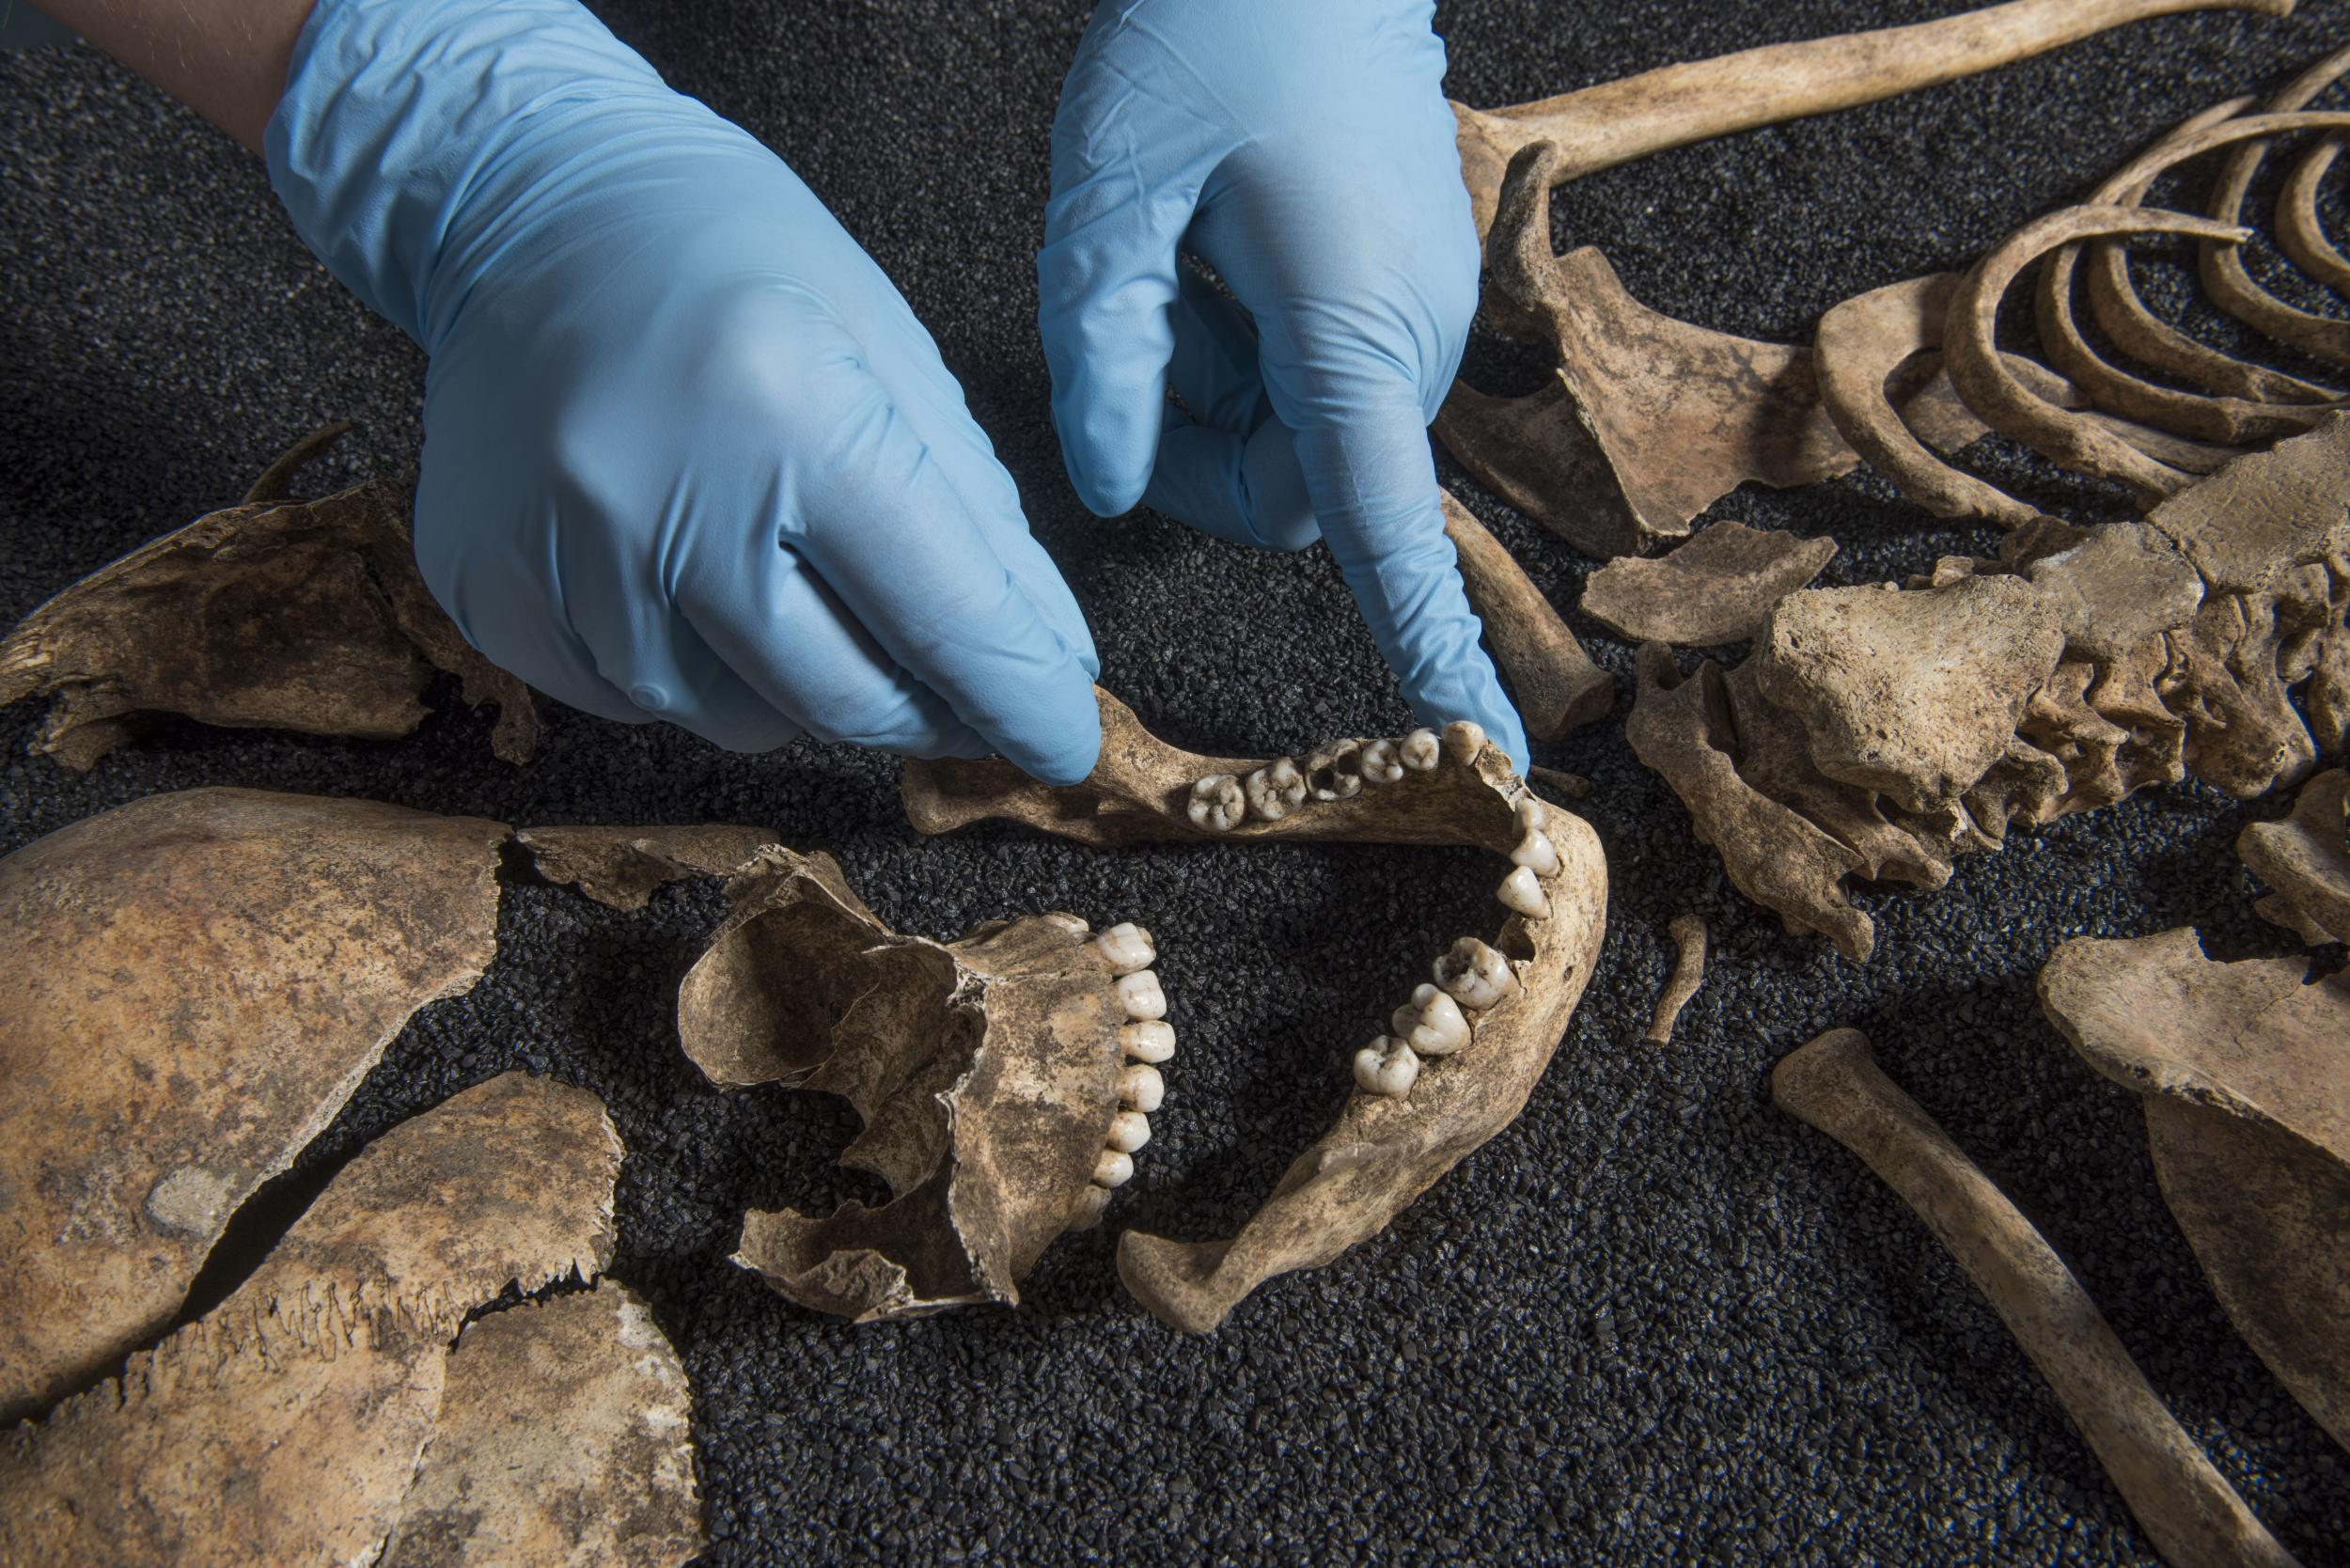 'Phenomenal' ancient Chinese skeleton discovery in London graveyard casts new light on Roman society